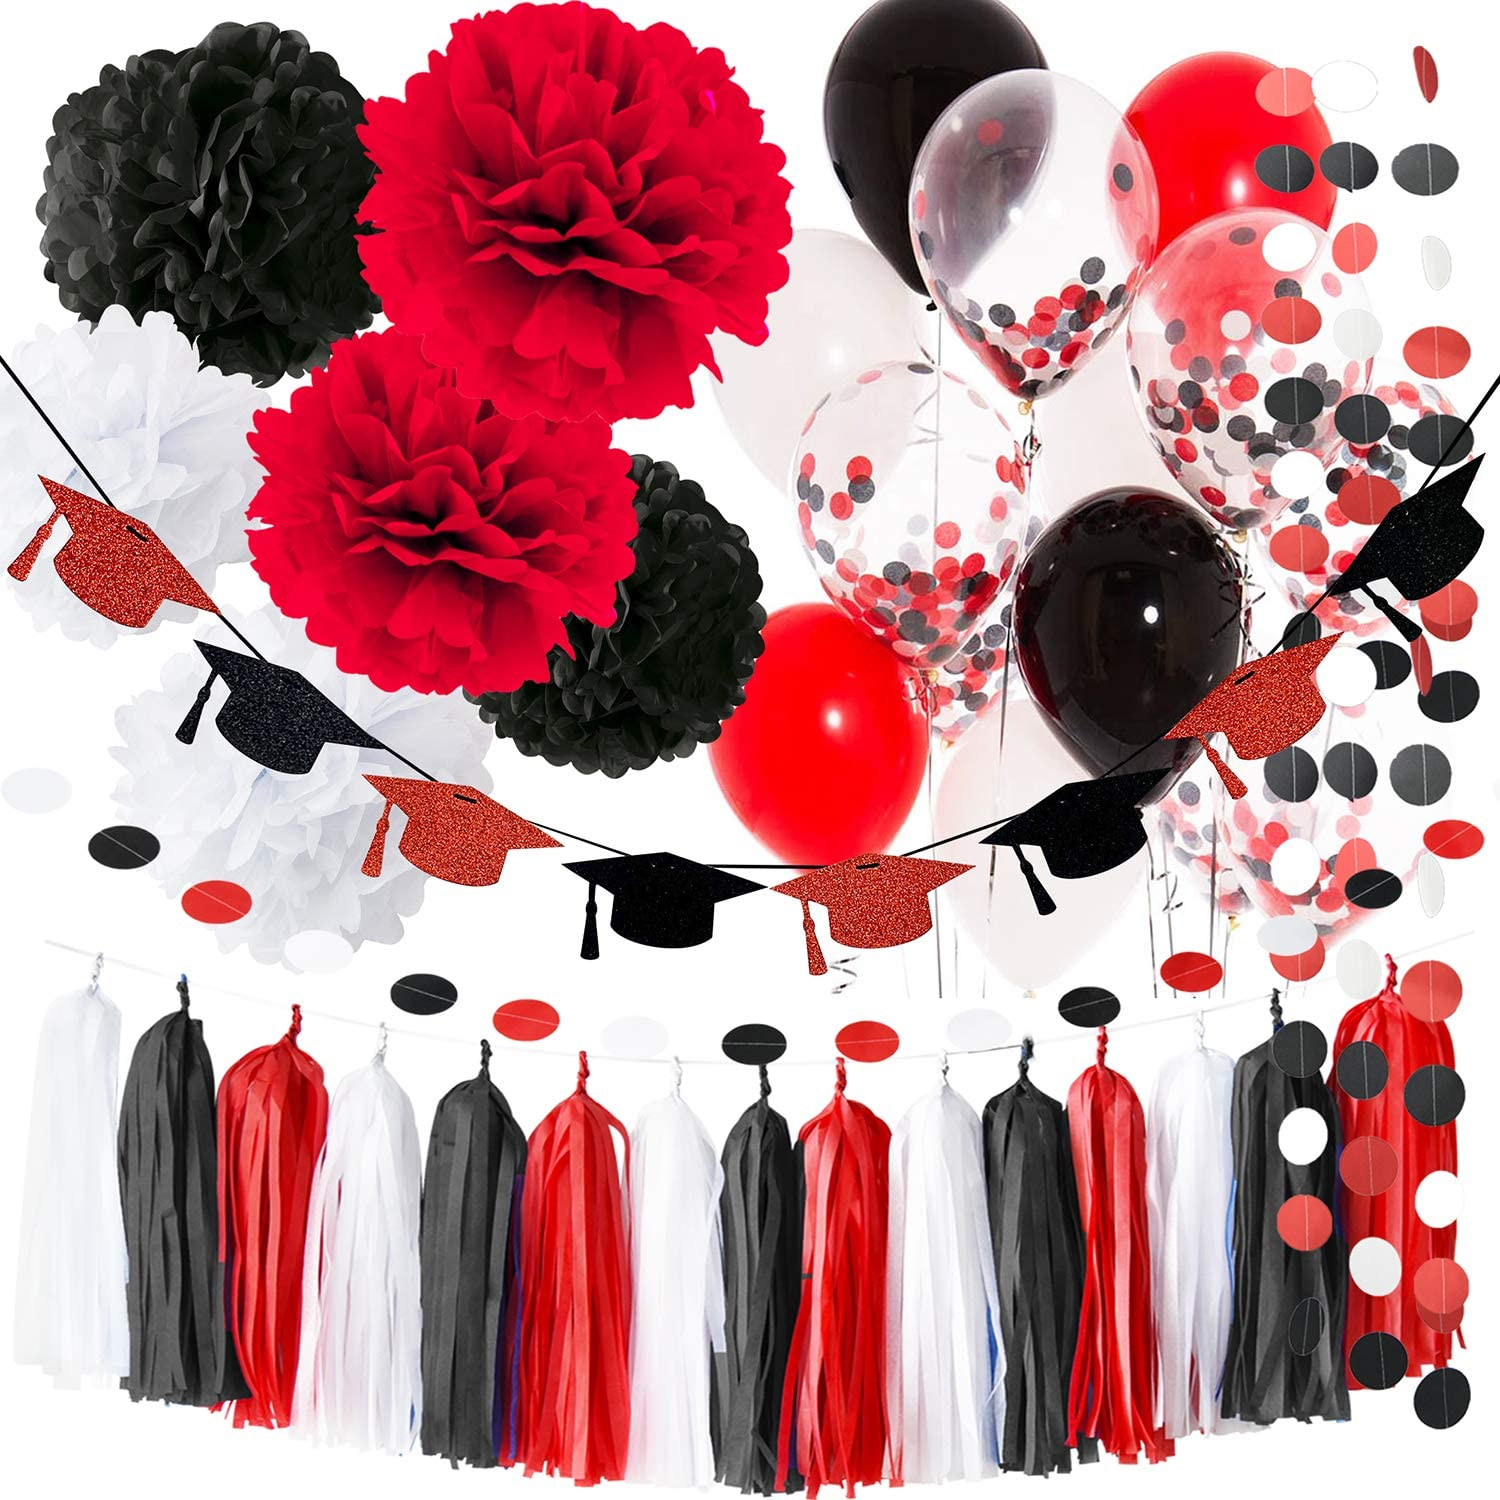 Amazon Com Black And Red Graduation Decorations 2021 White Party Supplies Balloons Glitter Grad Cap Garland Minnie Mouse Birthday Toys Games